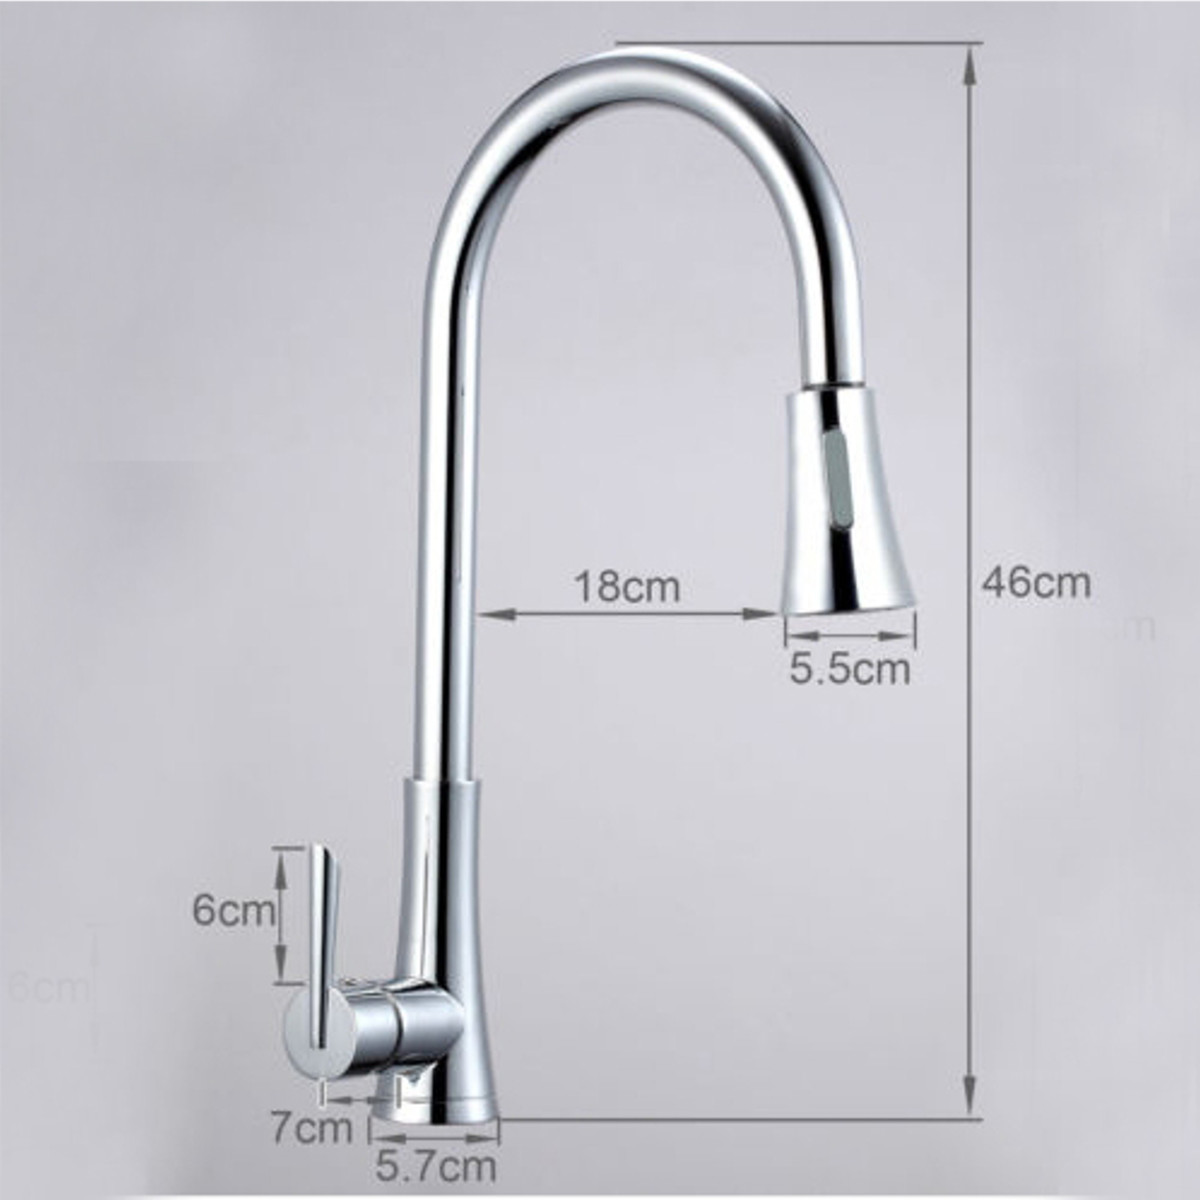 Flexible Chrome Brass Pull Out Kitchen Sink Single Lever Faucet Mixer Bath Basin Sink Faucet